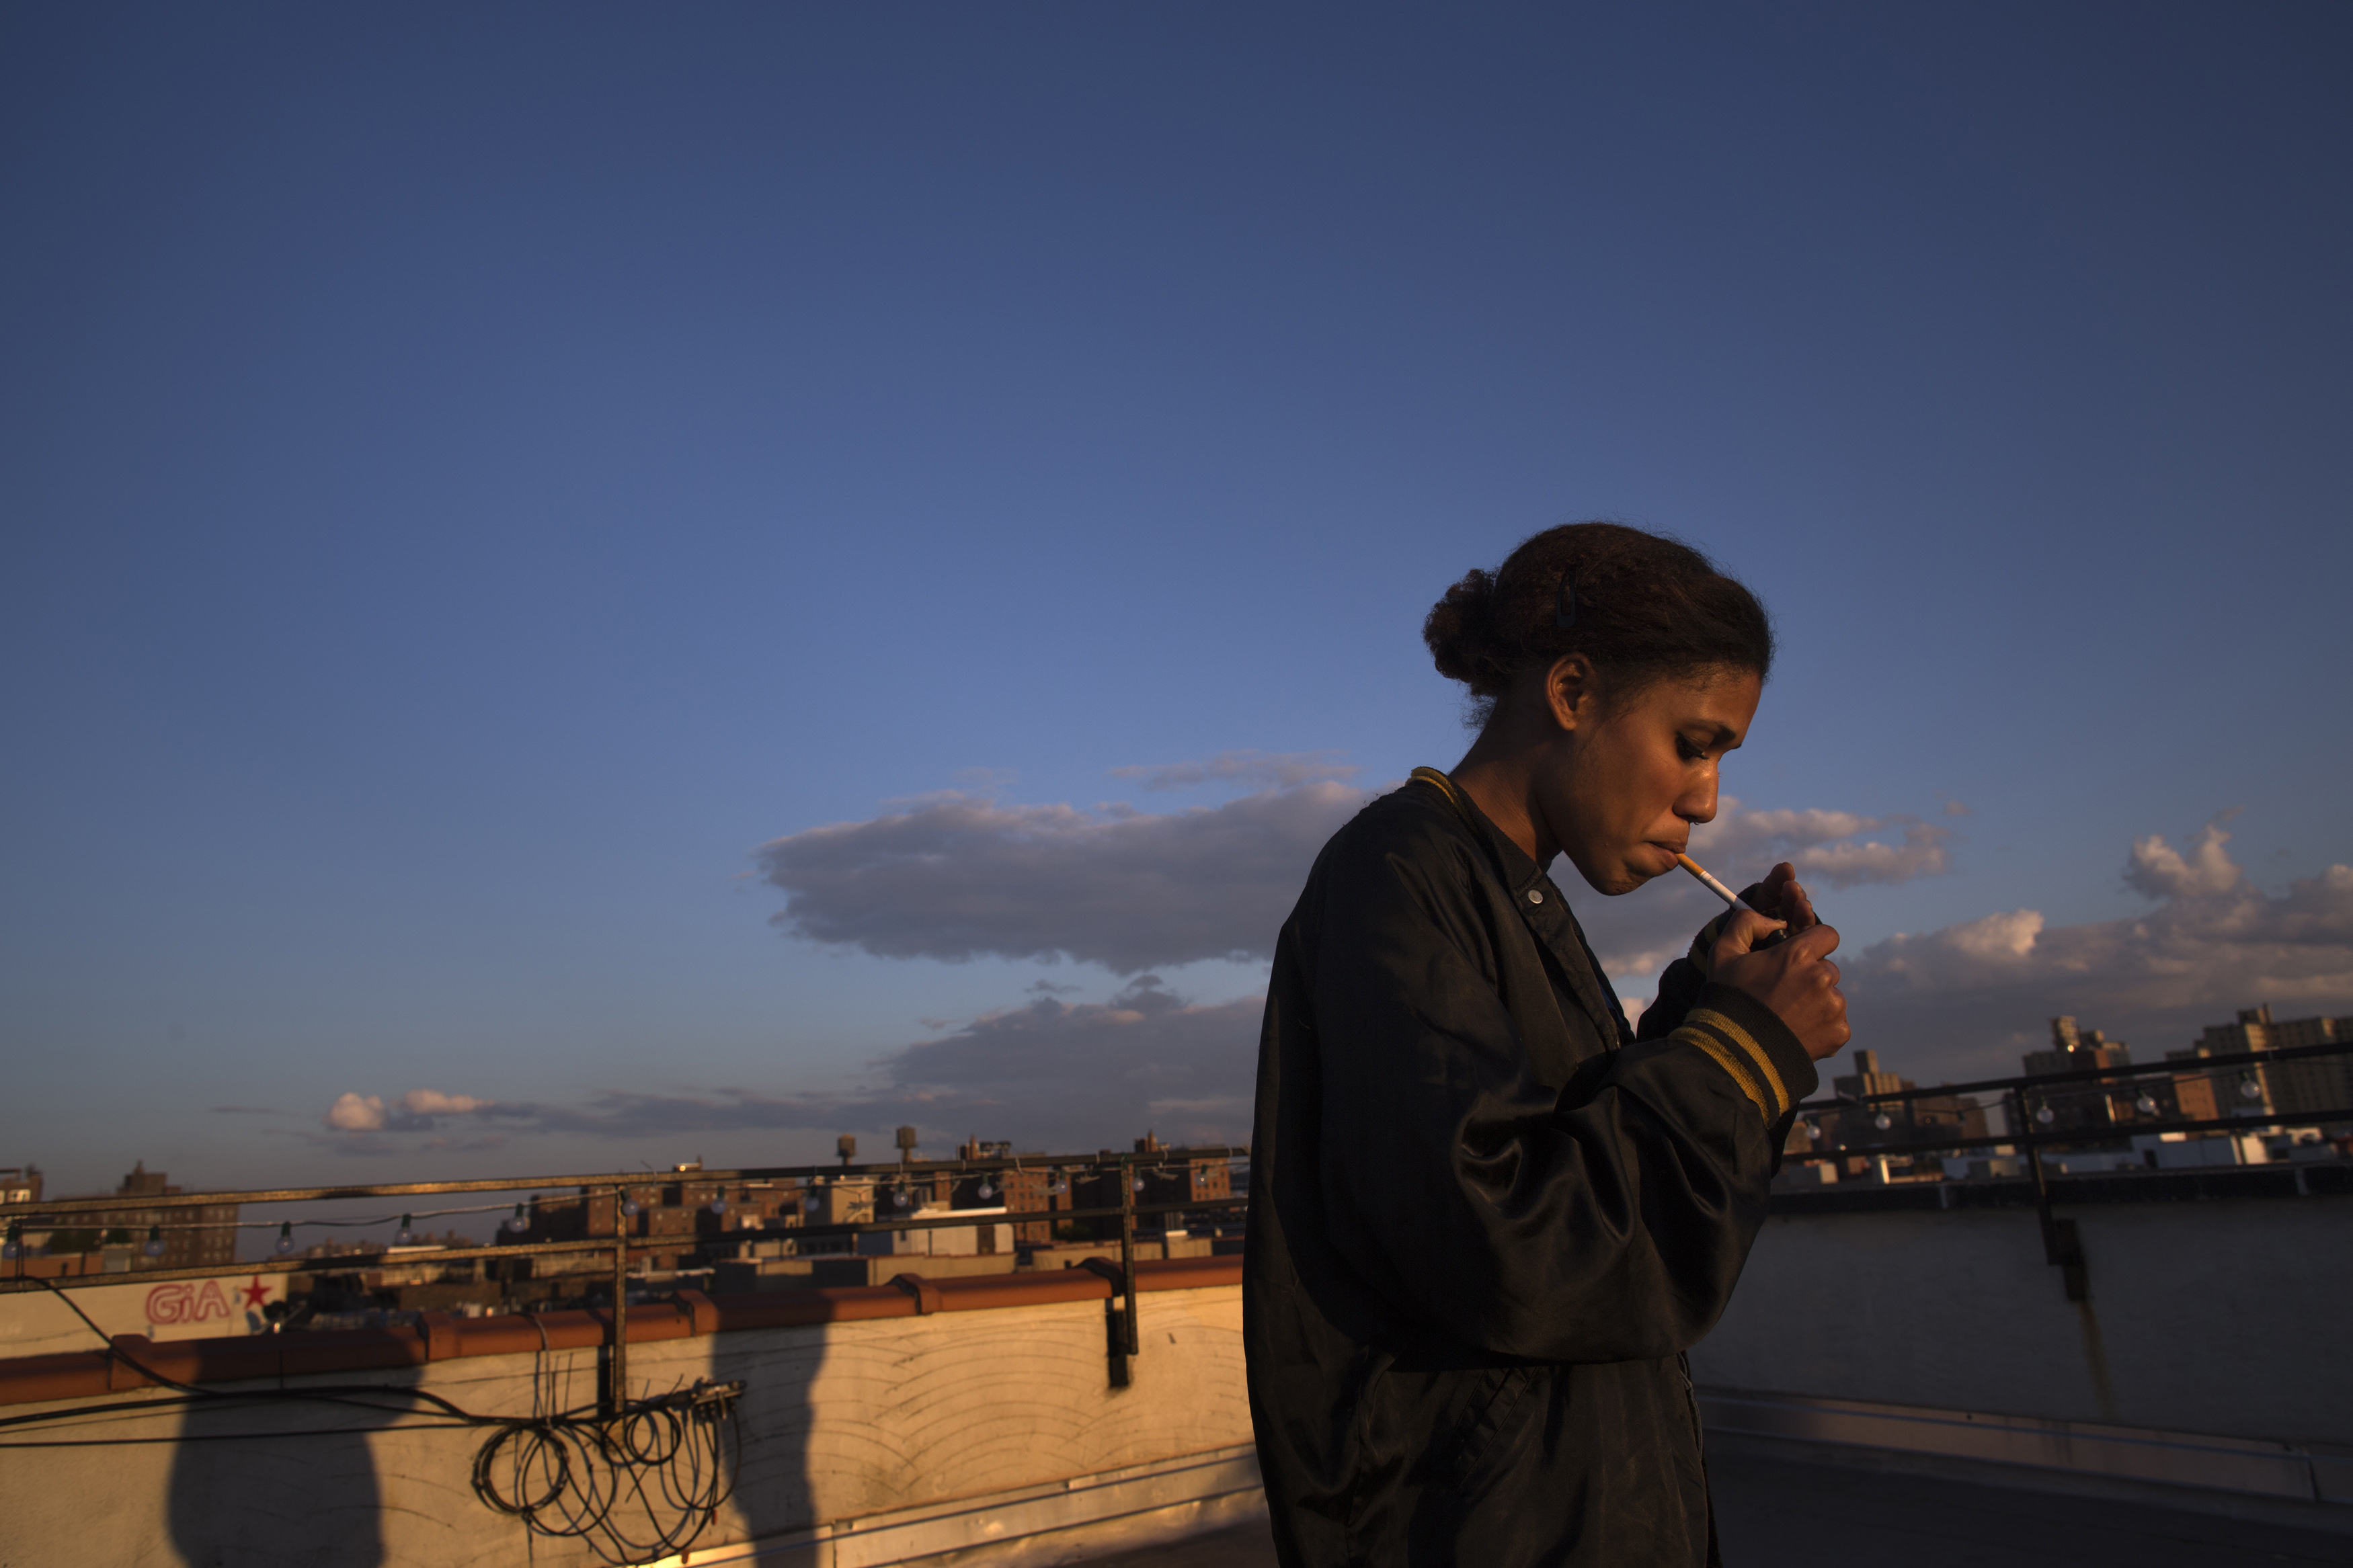 Ella Eliakim, 21, smokes on the roof of her apartment building in Lower Manhattan, New York May 18, 2014. The minimum age to buy cigarettes and tobacco was raised to 21 in New York City on May 18, 2014, six months after the law was signed by former Mayor Michael Bloomberg. Picture taken May 18, 2014. Photo by Eric Thayer/Reuters